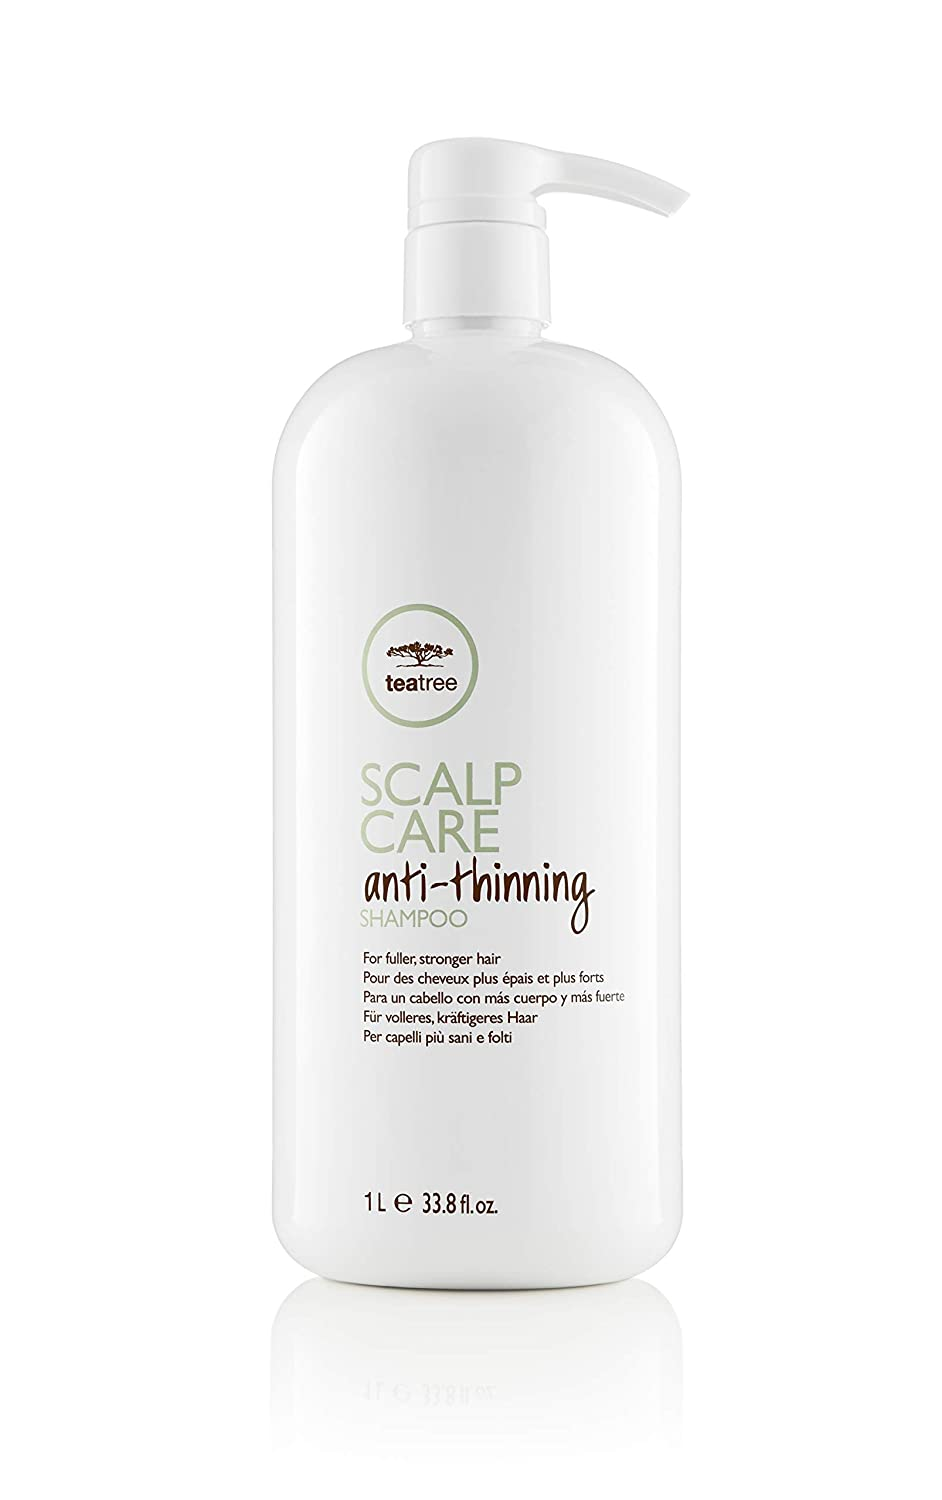 Paul Mitchell's Scalp Care Anti-thinning Shampoo Review